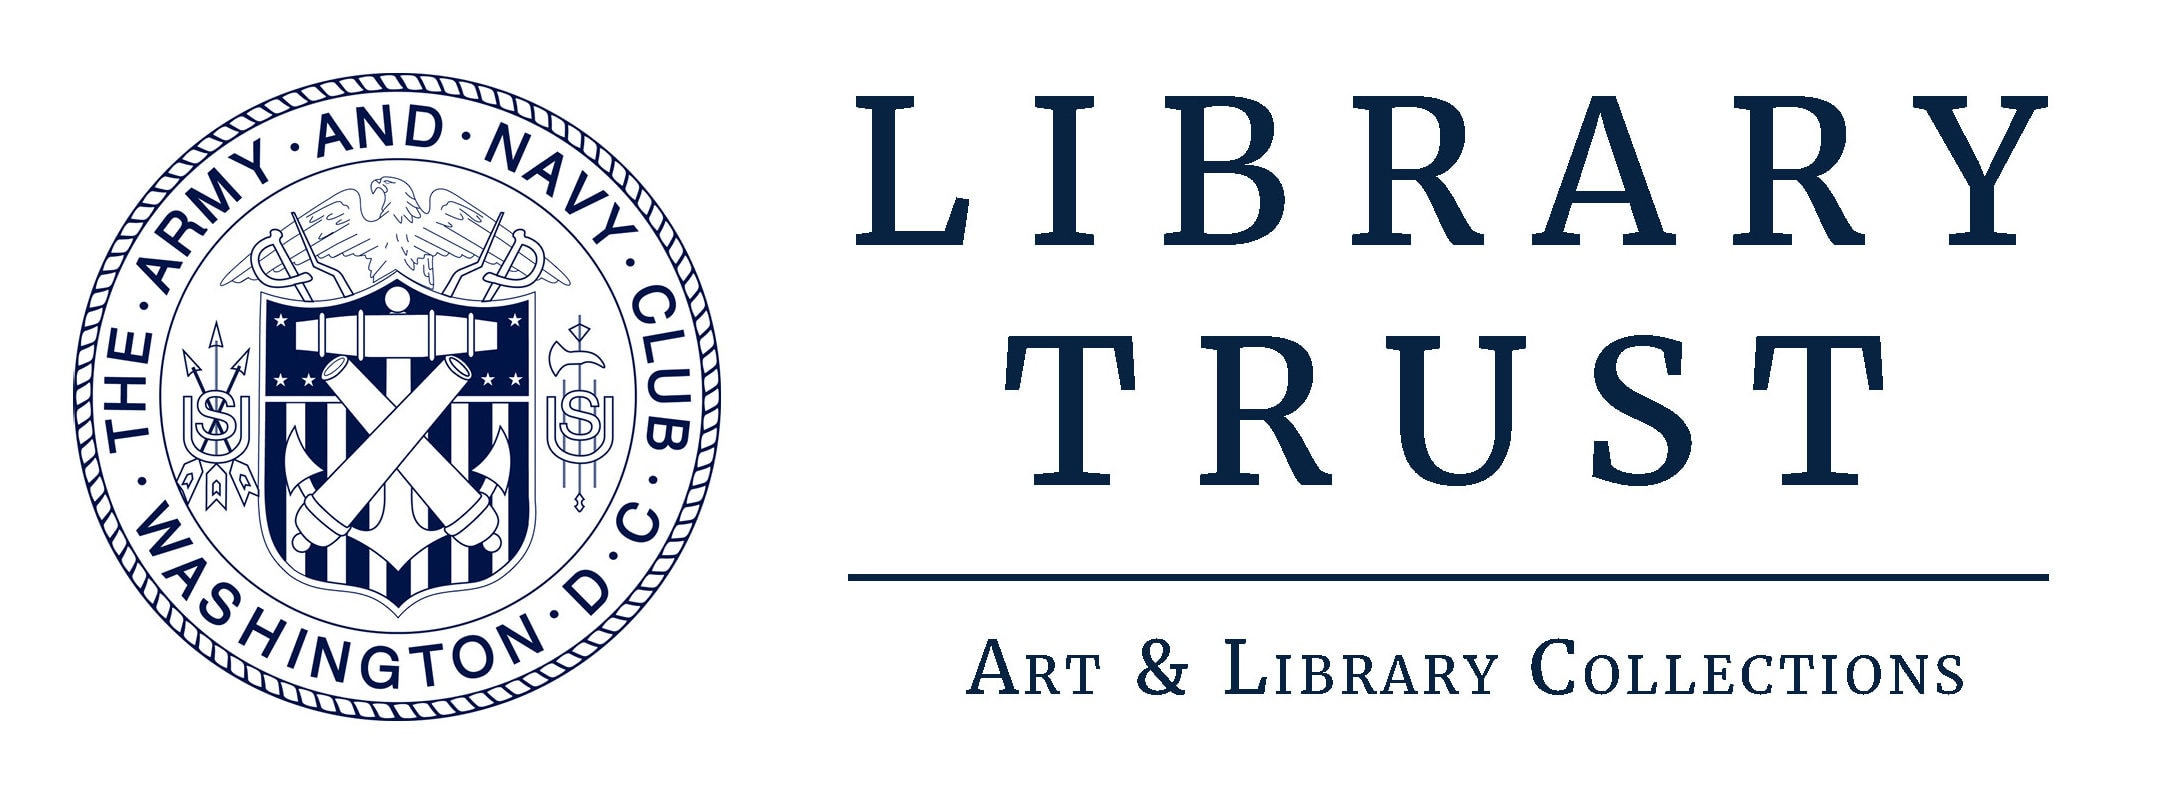 Library Trust Fund